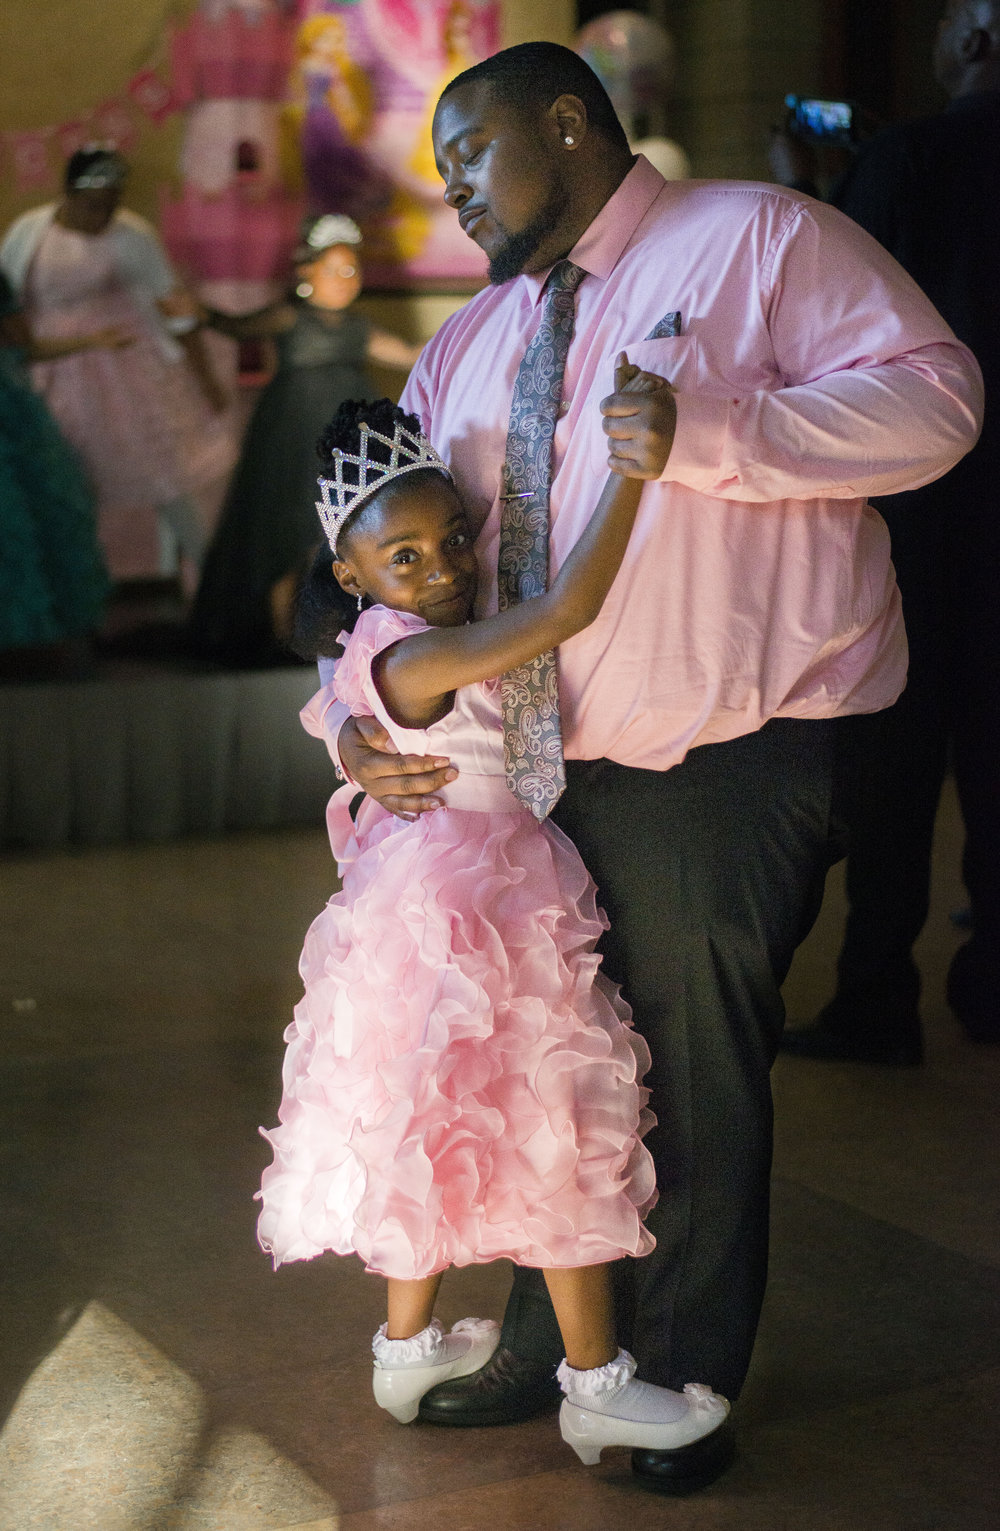 Ziara Glenn, 6, slow dances with her father, Jamaar Glenn, 26, to a song at the Daddy Daughter Princess Ball on June 17, 2016, at the Fort Wayne Community Center.